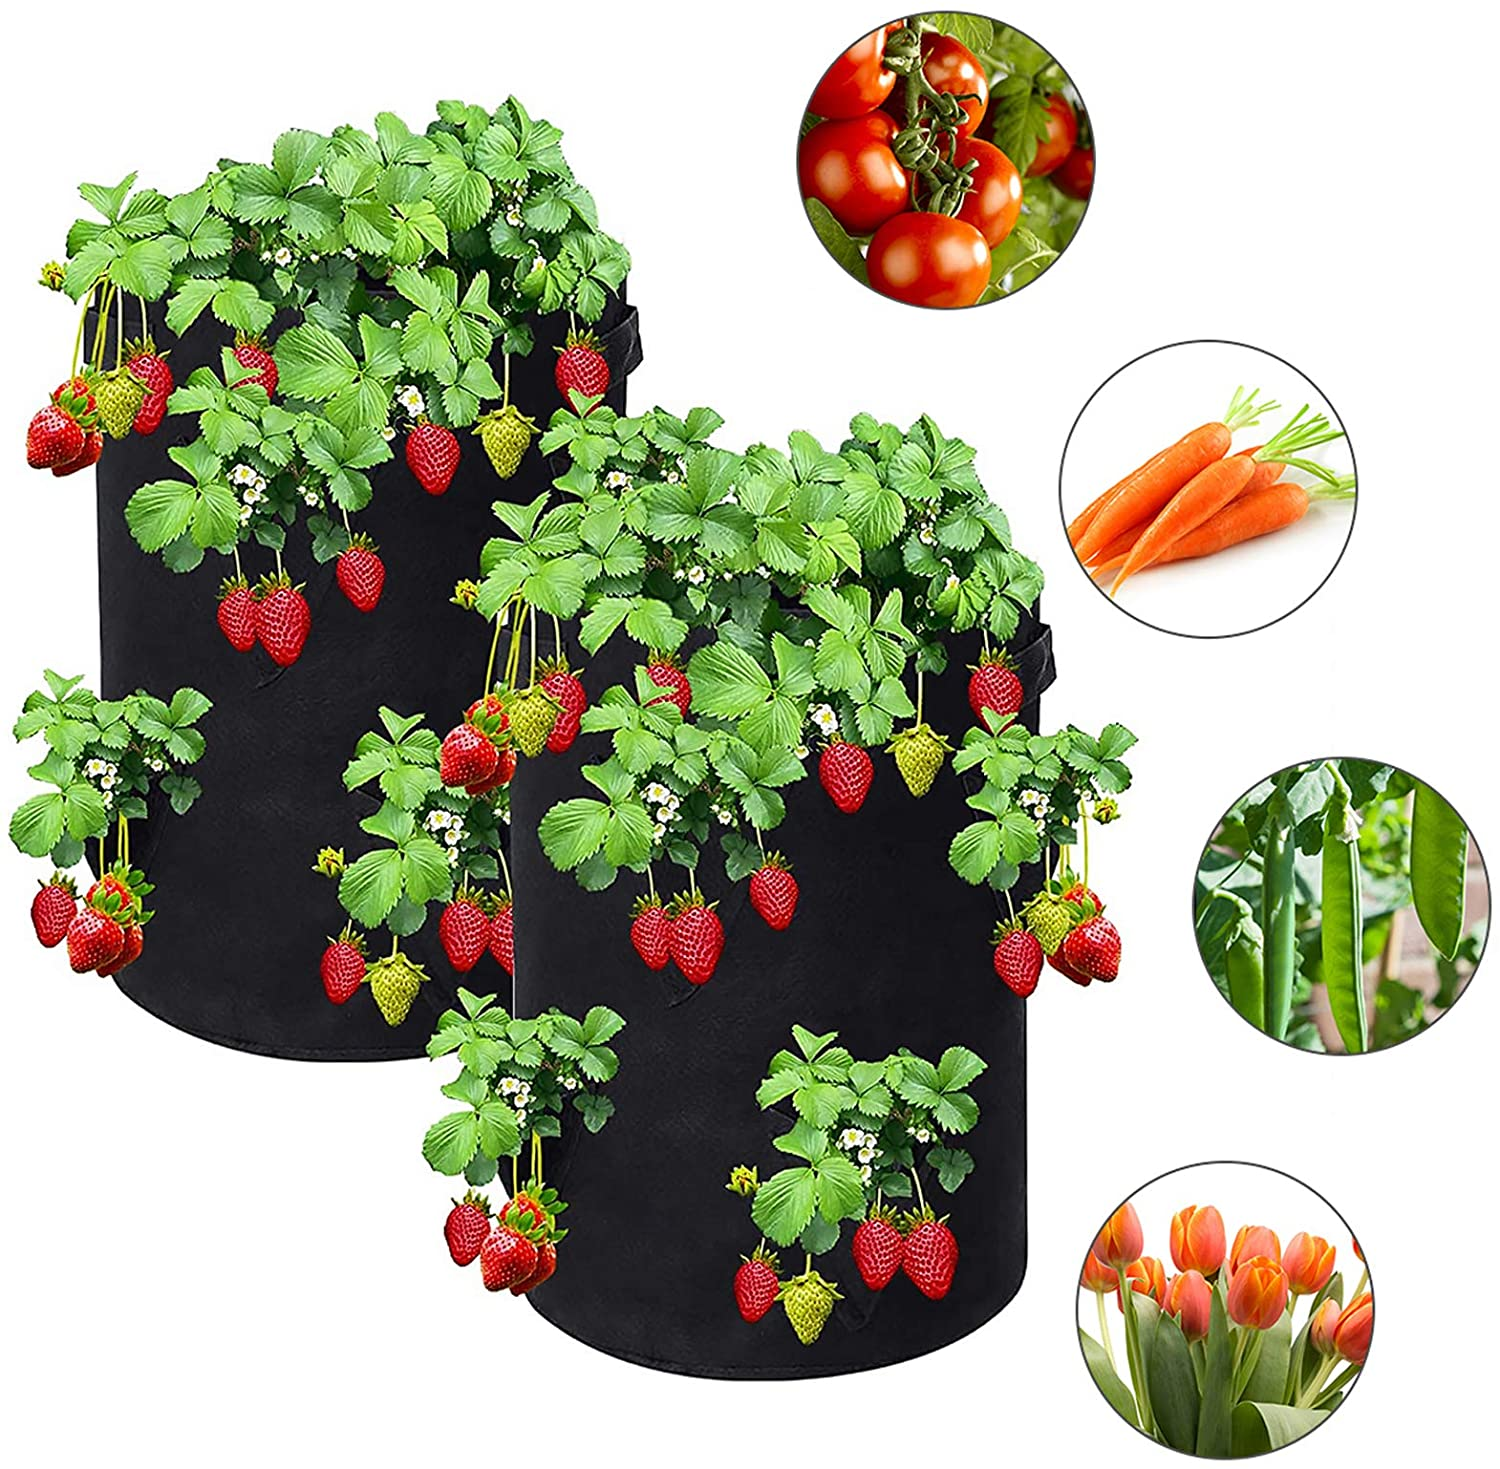 Strawberry Grow Bags, 2-Pack 10 Gallon Strawberry Plant Bag with 5 Side Planting Pockets, Breathable Non-Woven Fabric Plant Container with Handles for Balcony Courtyard Gardening